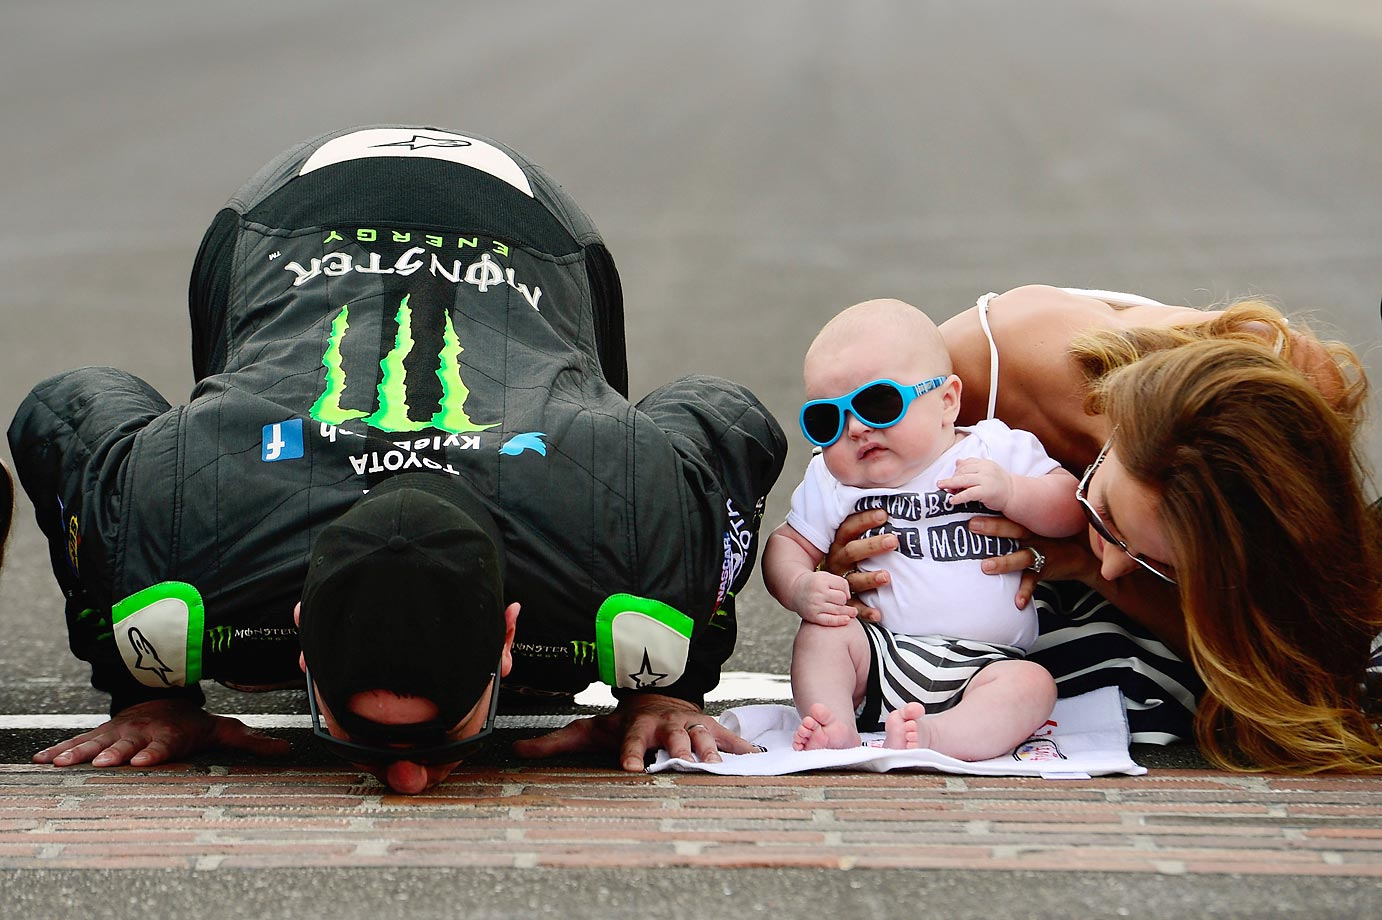 Kyle Busch and his wife Samantha celebrate by kissing the bricks as their son Brexton looks on.